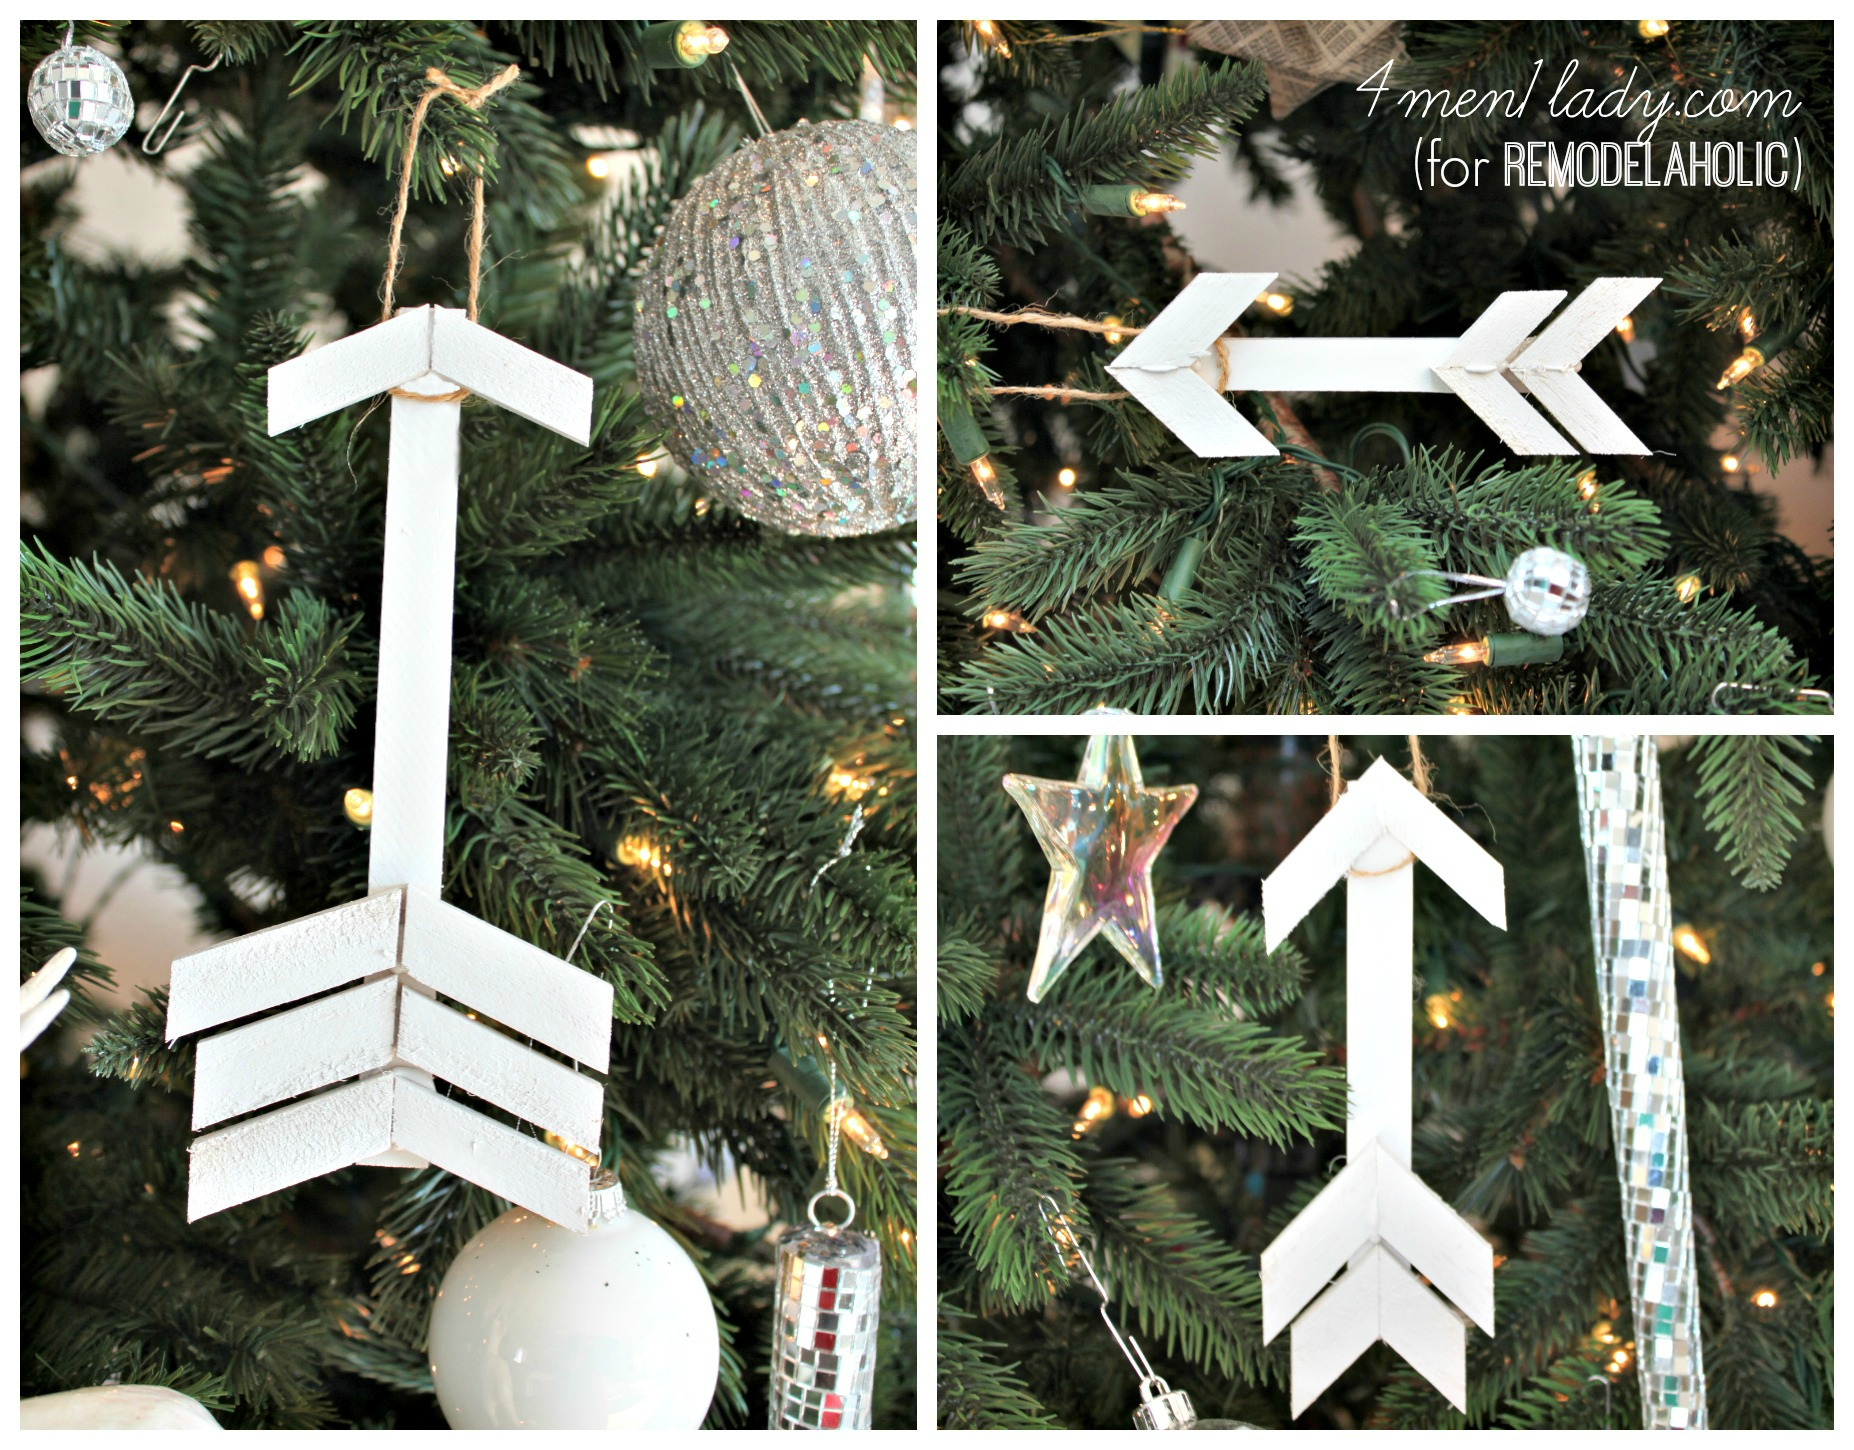 diy wooden arrow tree ornaments | 4men1lady for Remodelaholic.com